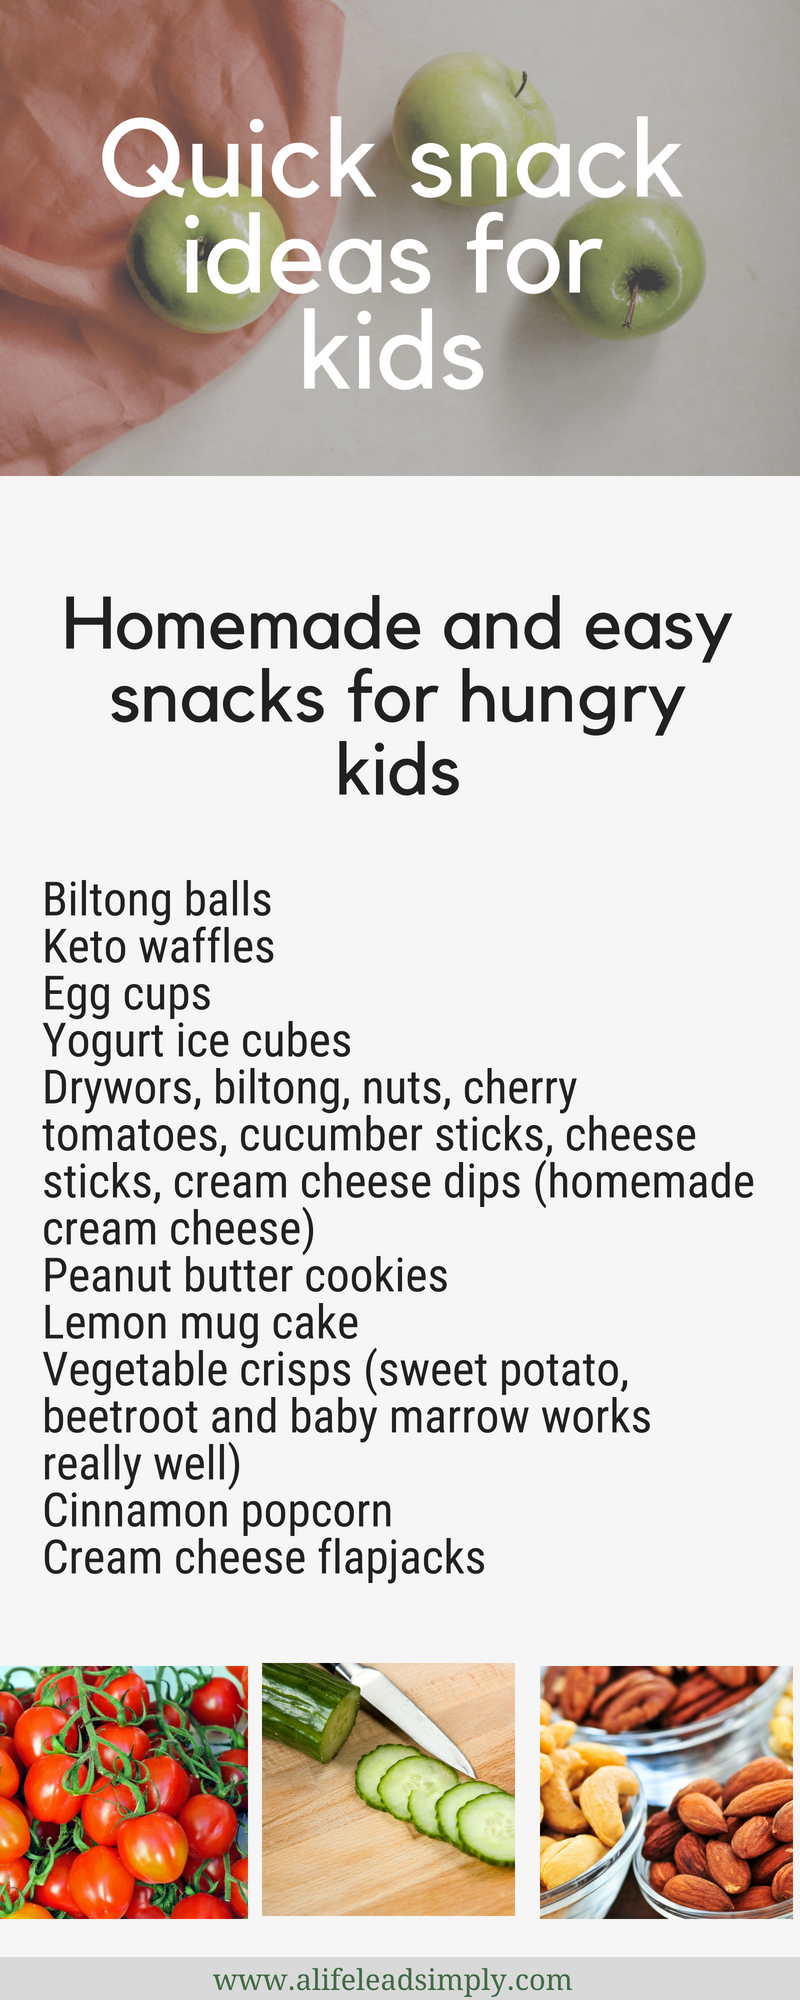 Kids, Quick & easy snack ideas, LCHF Zero sugar, A life lead simply, www.alifeleadsimply (3).png